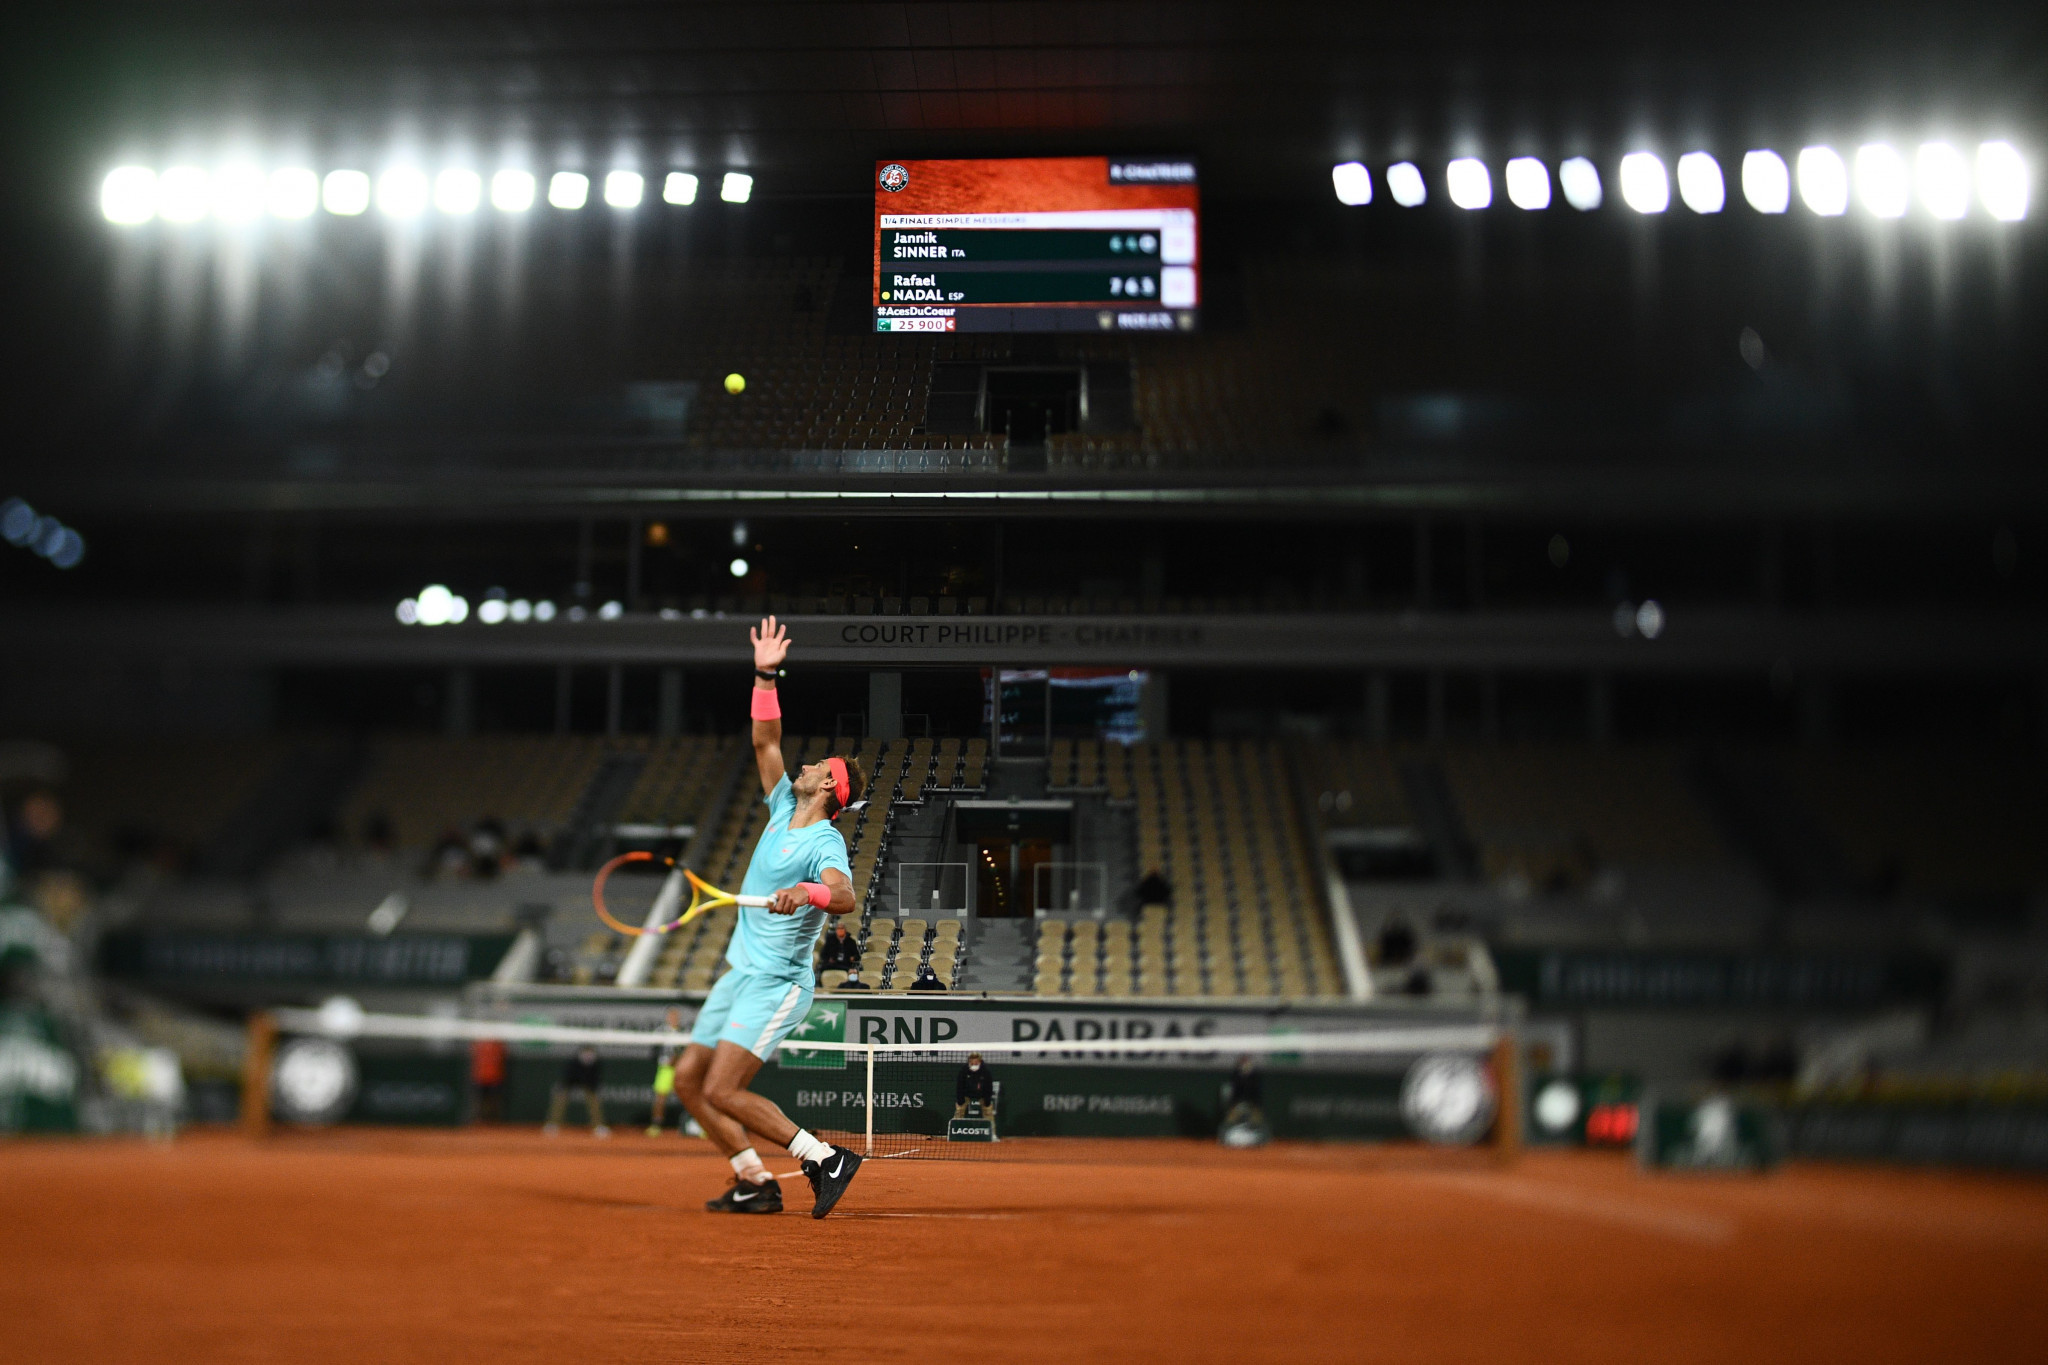 Rafael Nadal defeated Jannik Sinner of Italy in straight sets in a match that recorded the latest ever finish at Roland Garros - 1.26am local time ©Getty Images